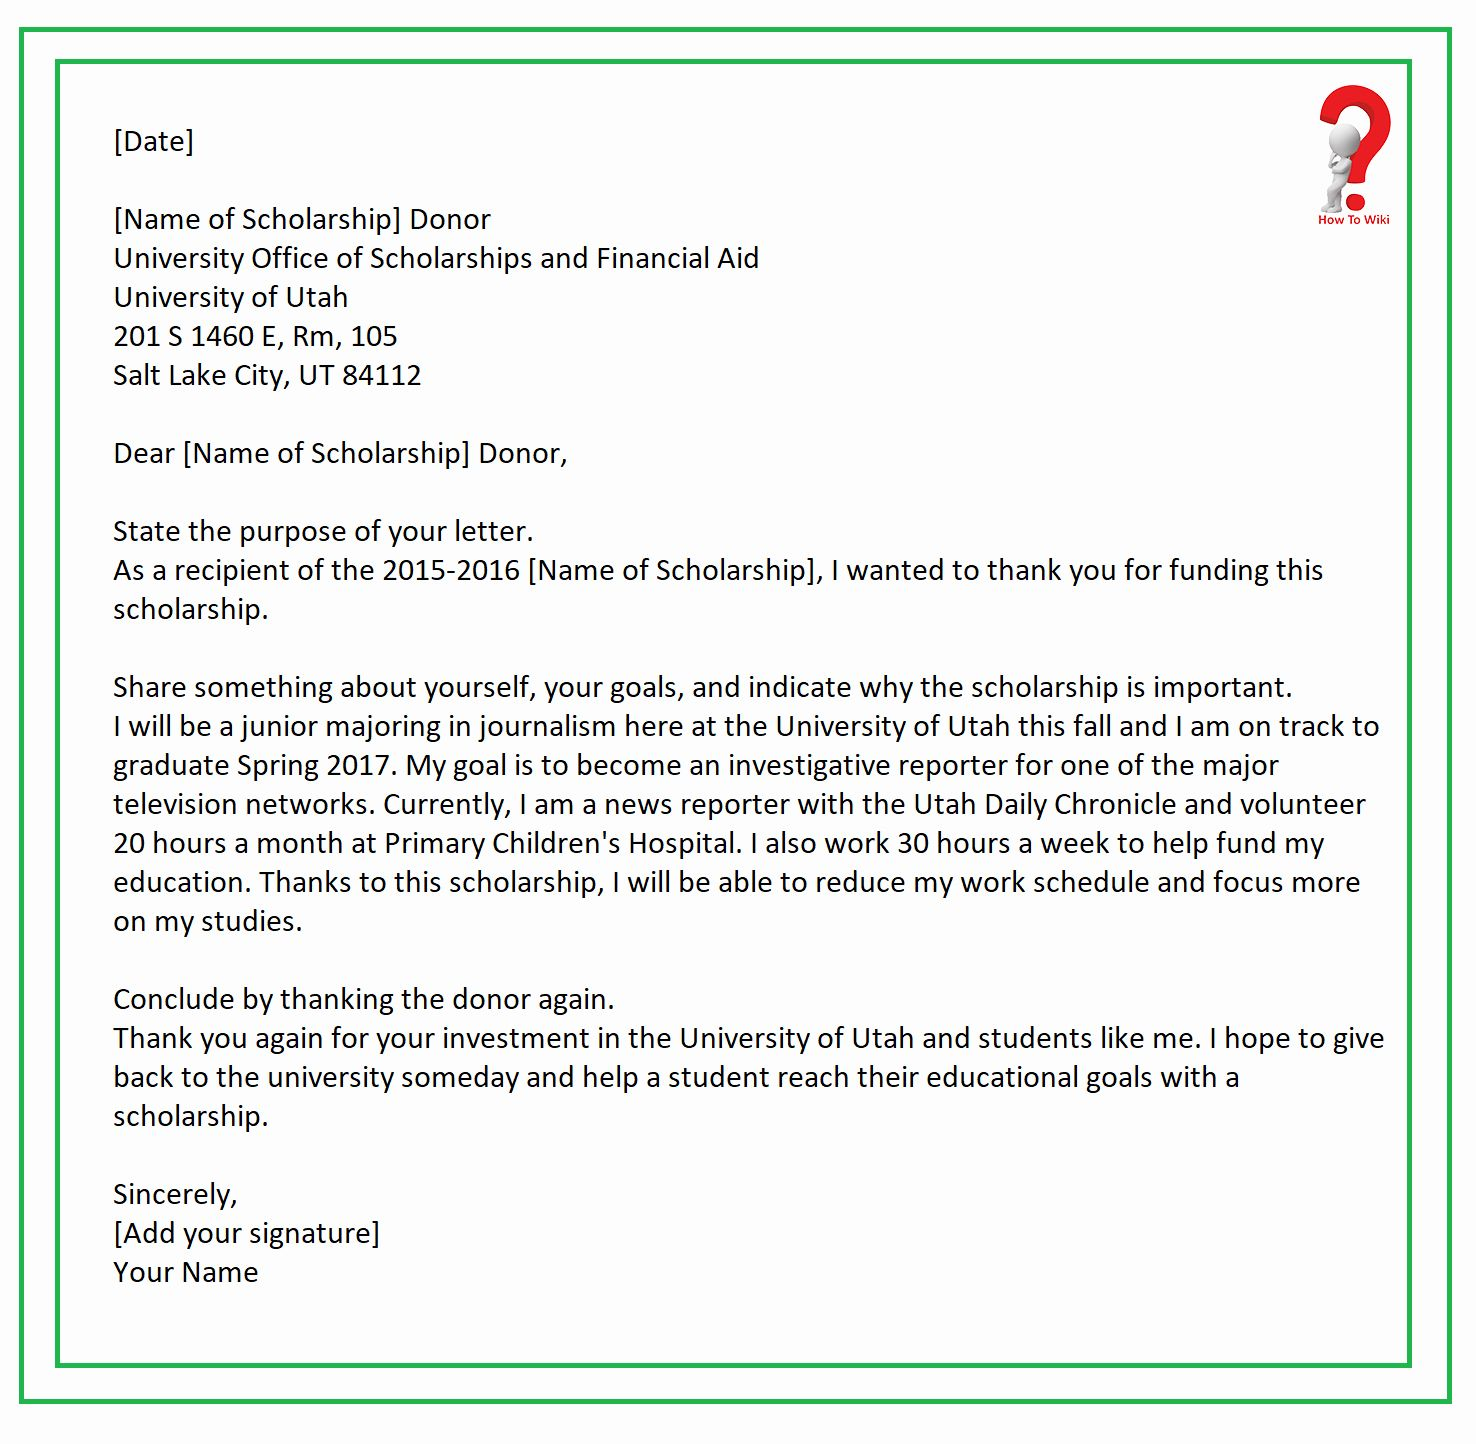 Scholarship Thank You Letter Examples Luxury How To Write Thank You Letter For Thank You Letter Examples Scholarship Thank You Letter Thank You Letter Template